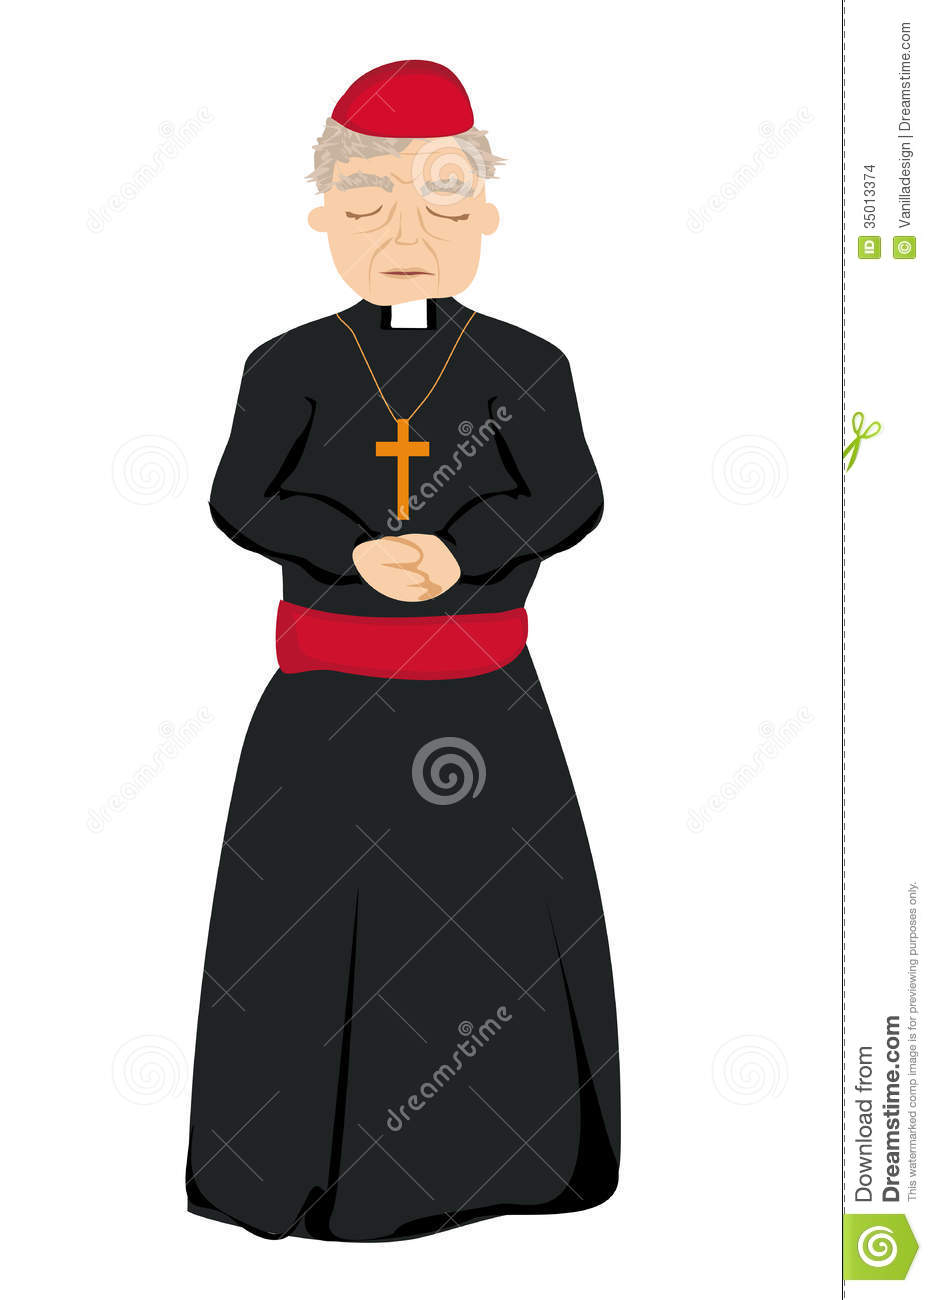 Catholic Priest On A White Background Stock Images - Image: 35013374